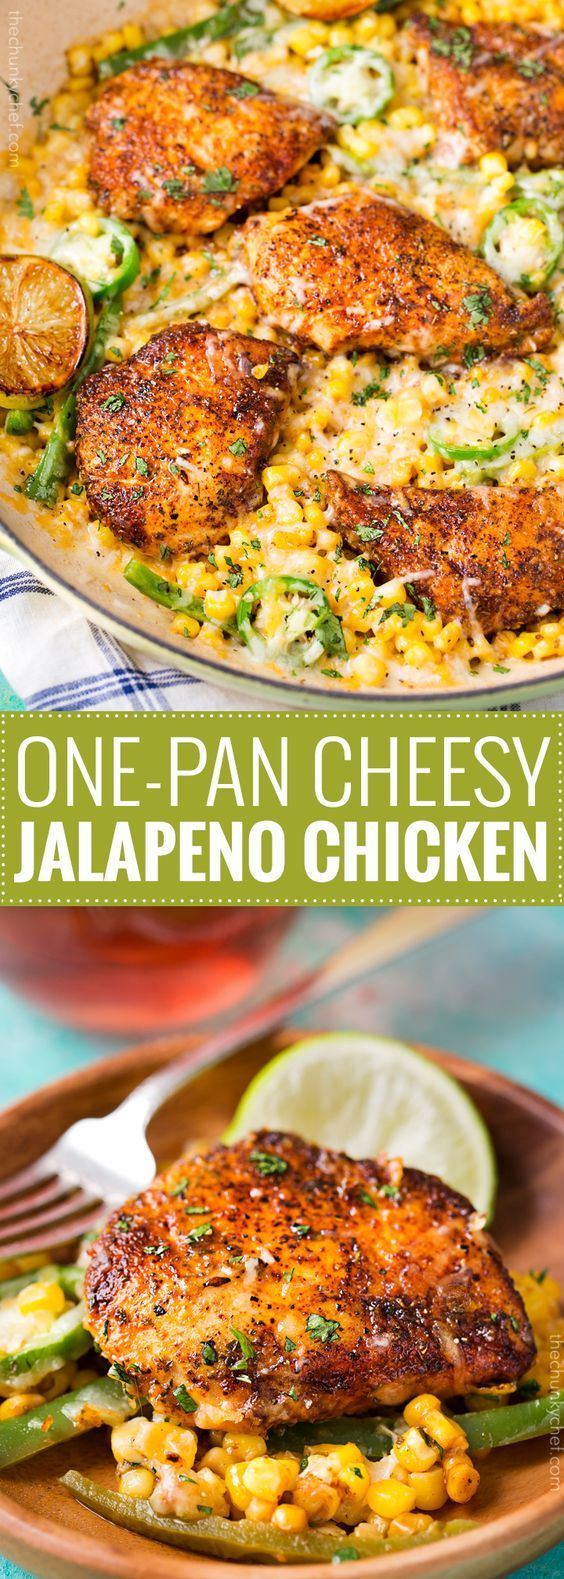 One Pan Cheesy Jalapeño Chicken | An easy weeknight meal, bursting with flavor, smothered in melty cheese, and on your table in 20 minutes! | http://thechunkychef.com (Breaded Chicken Skillet)